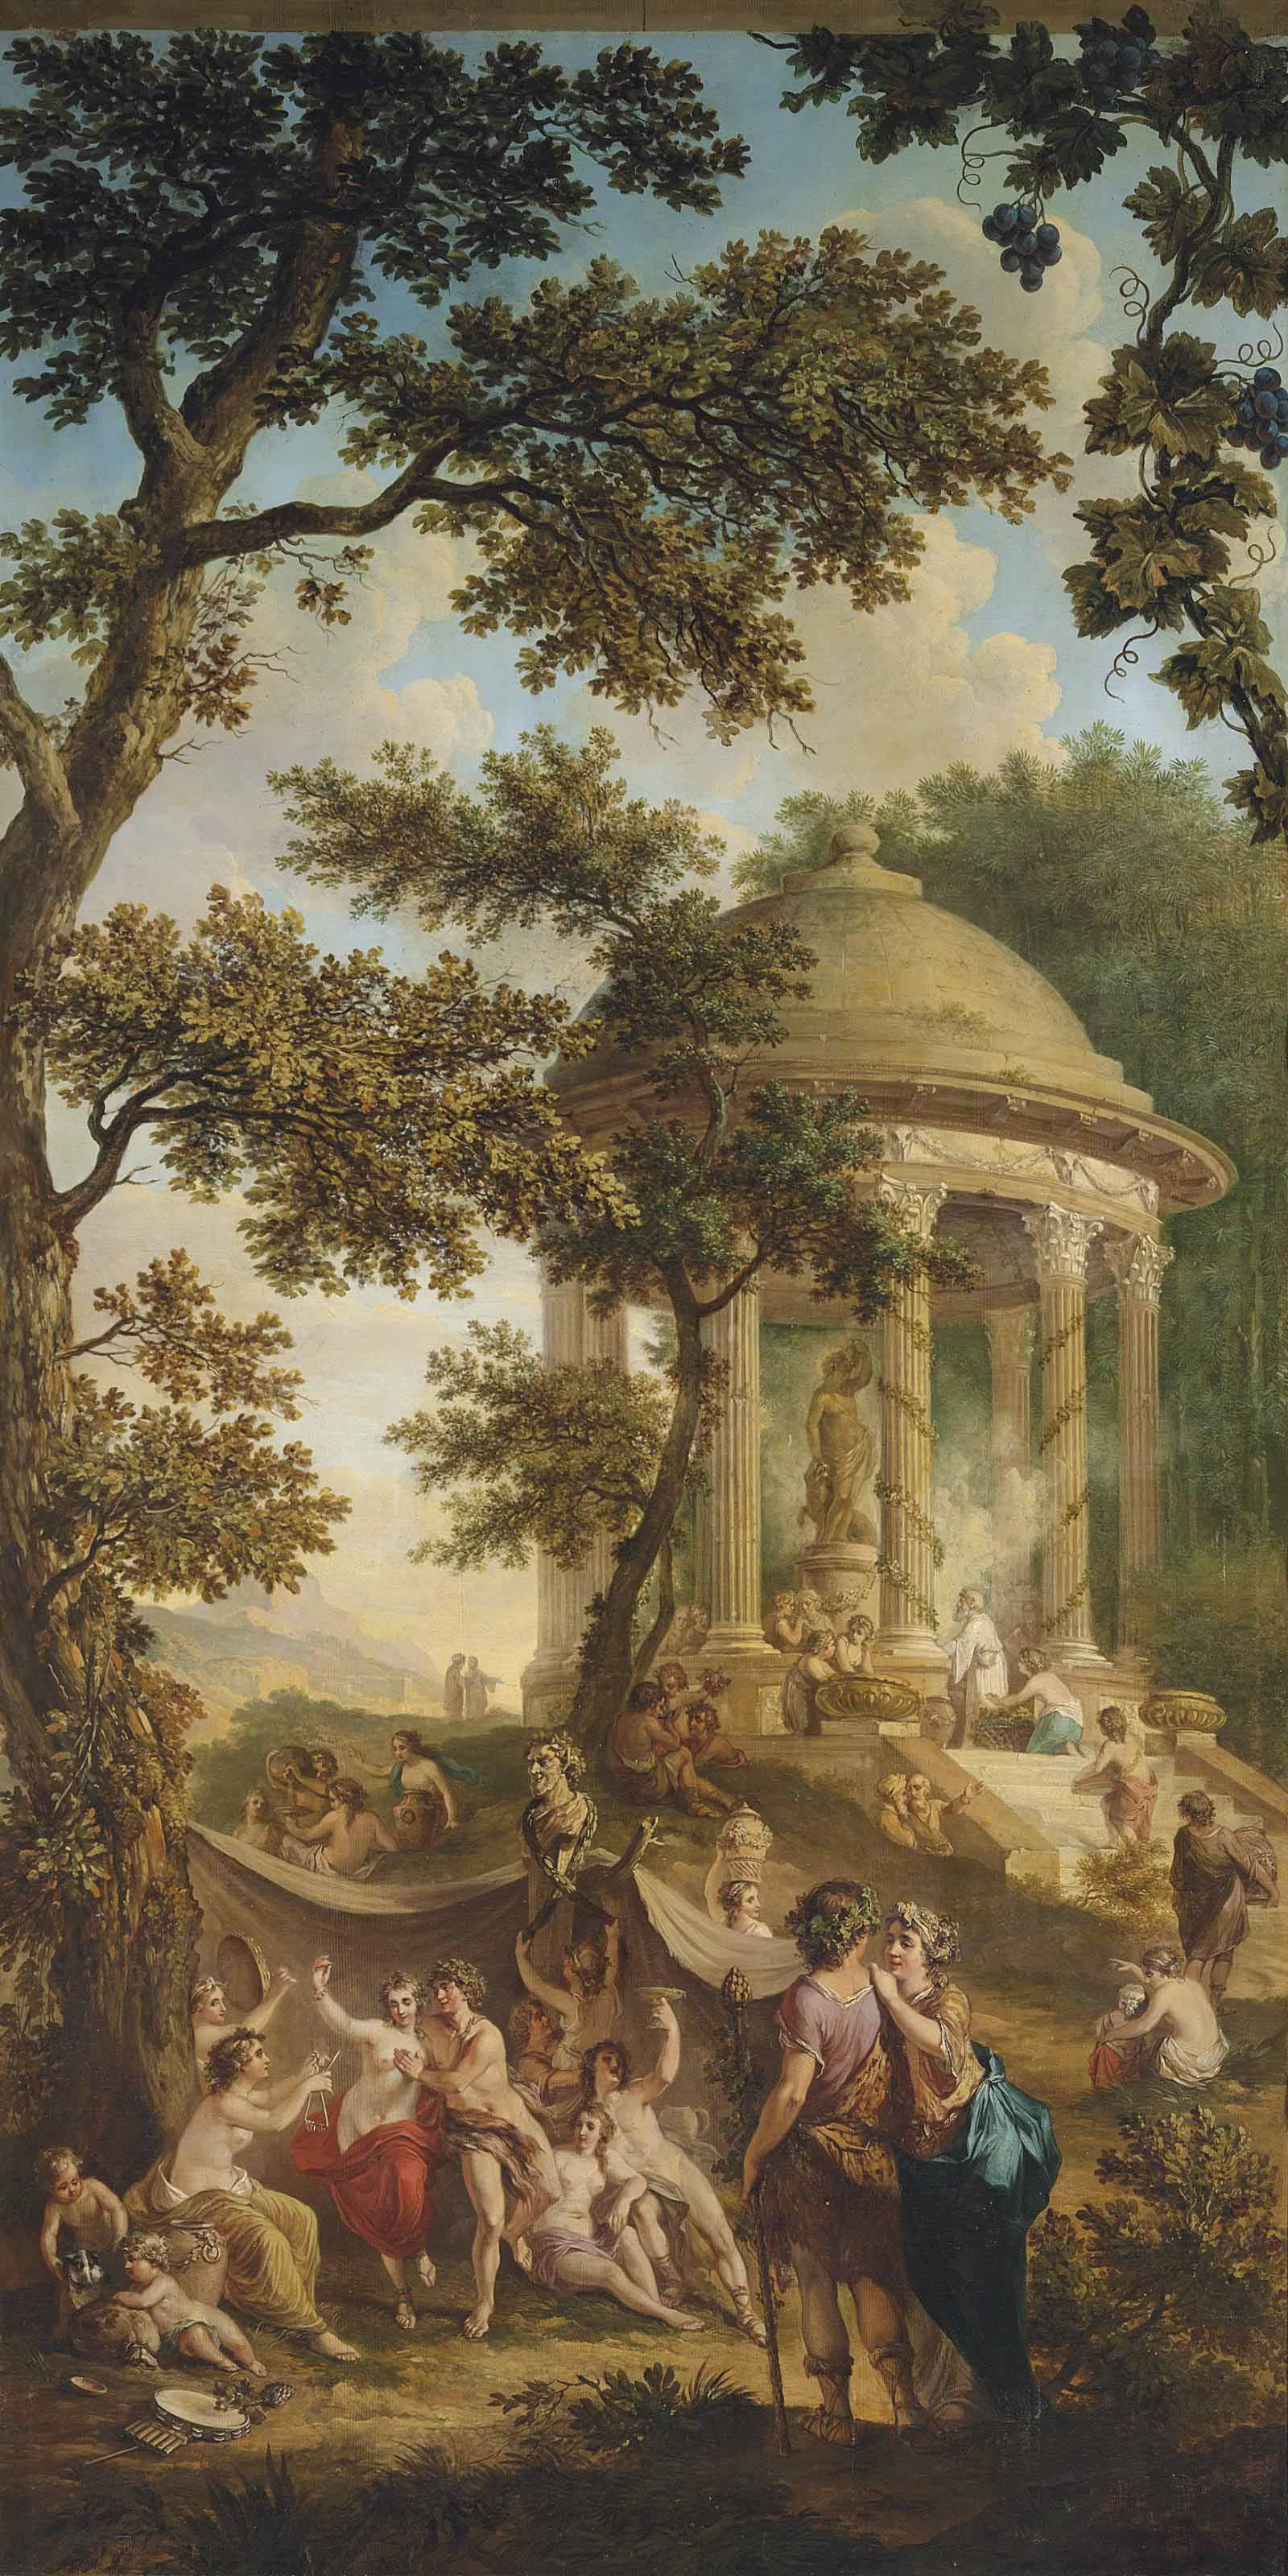 A bacchanal in a wooded landscape, a temple with an offer to Bacchus beyond, in a trompe l'oeil frame